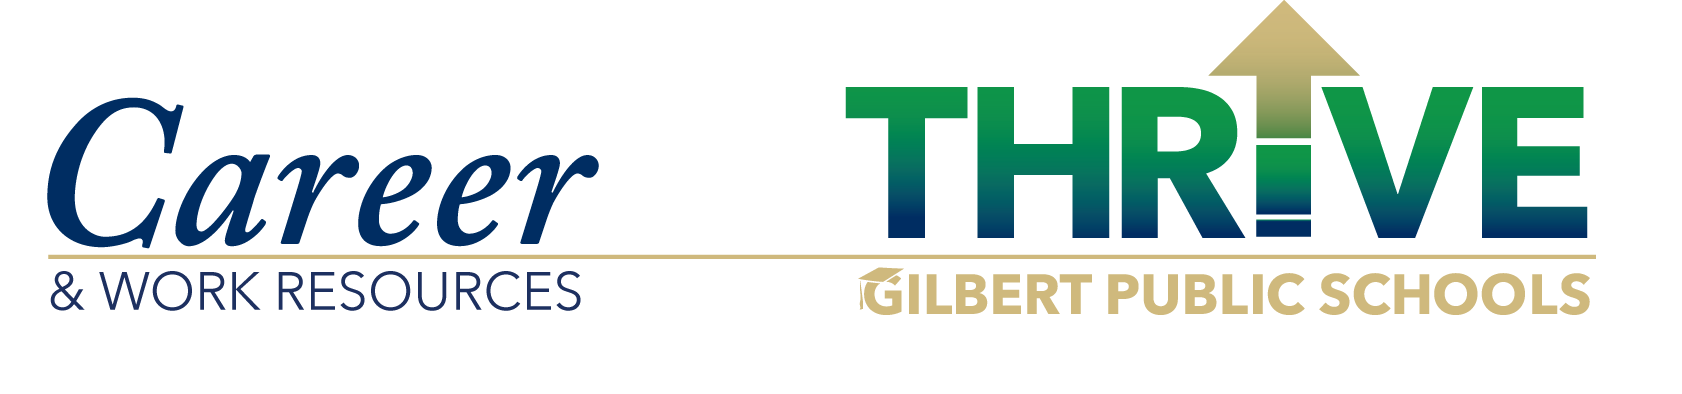 Career & Work THRIVE Gilbert Public Schools